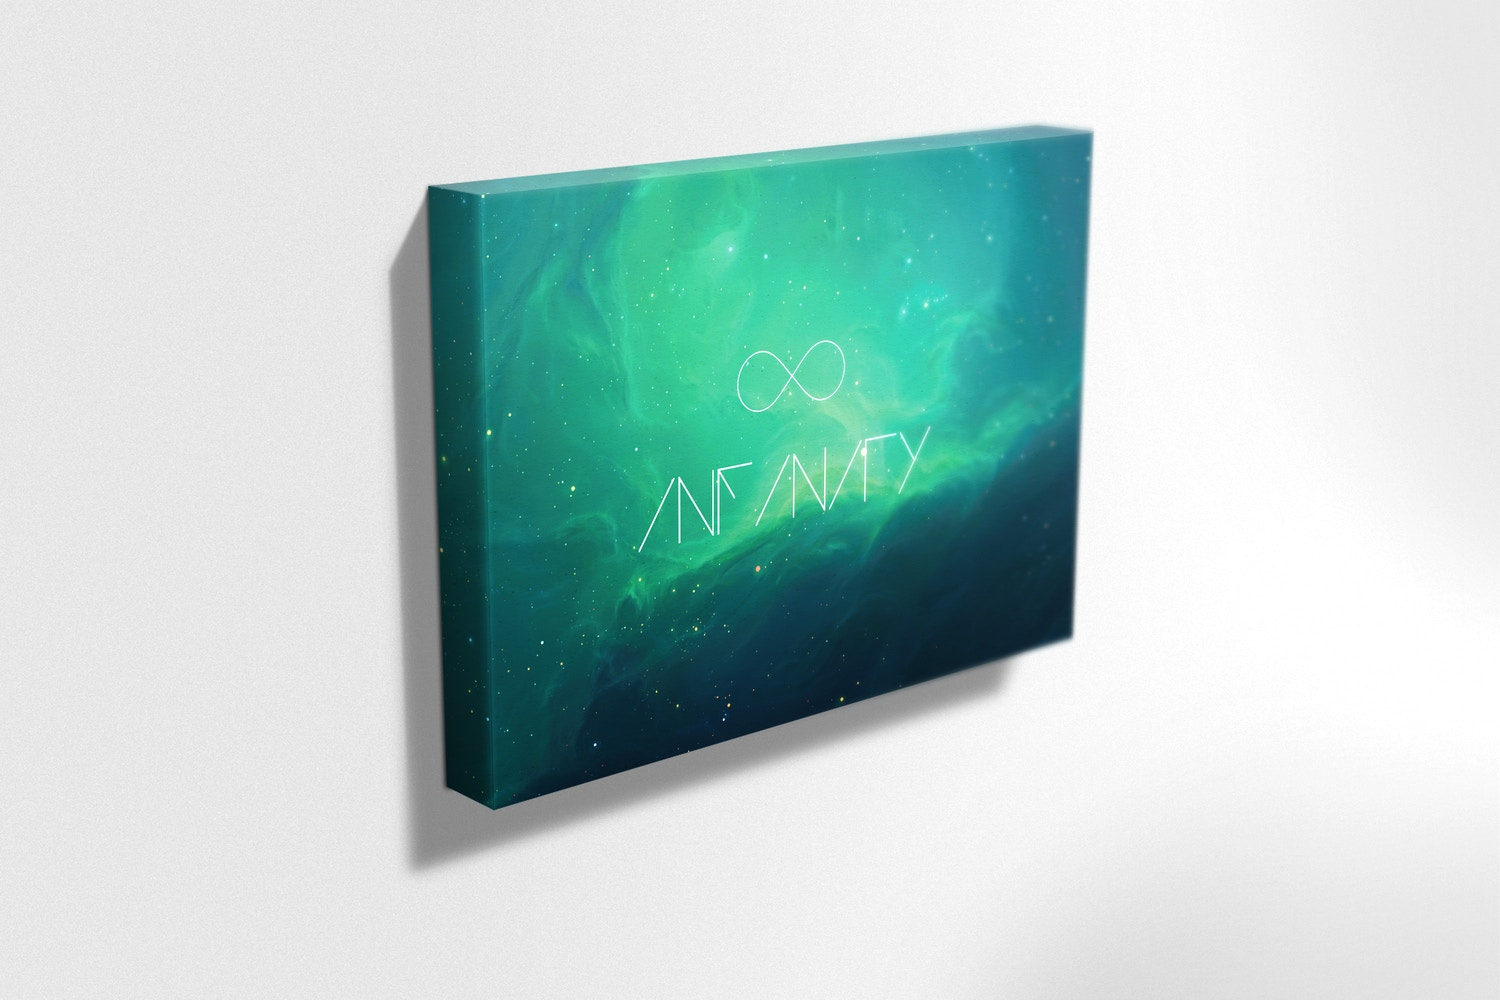 Canvas Mockup 1 by Original Mockups on Original Mockups